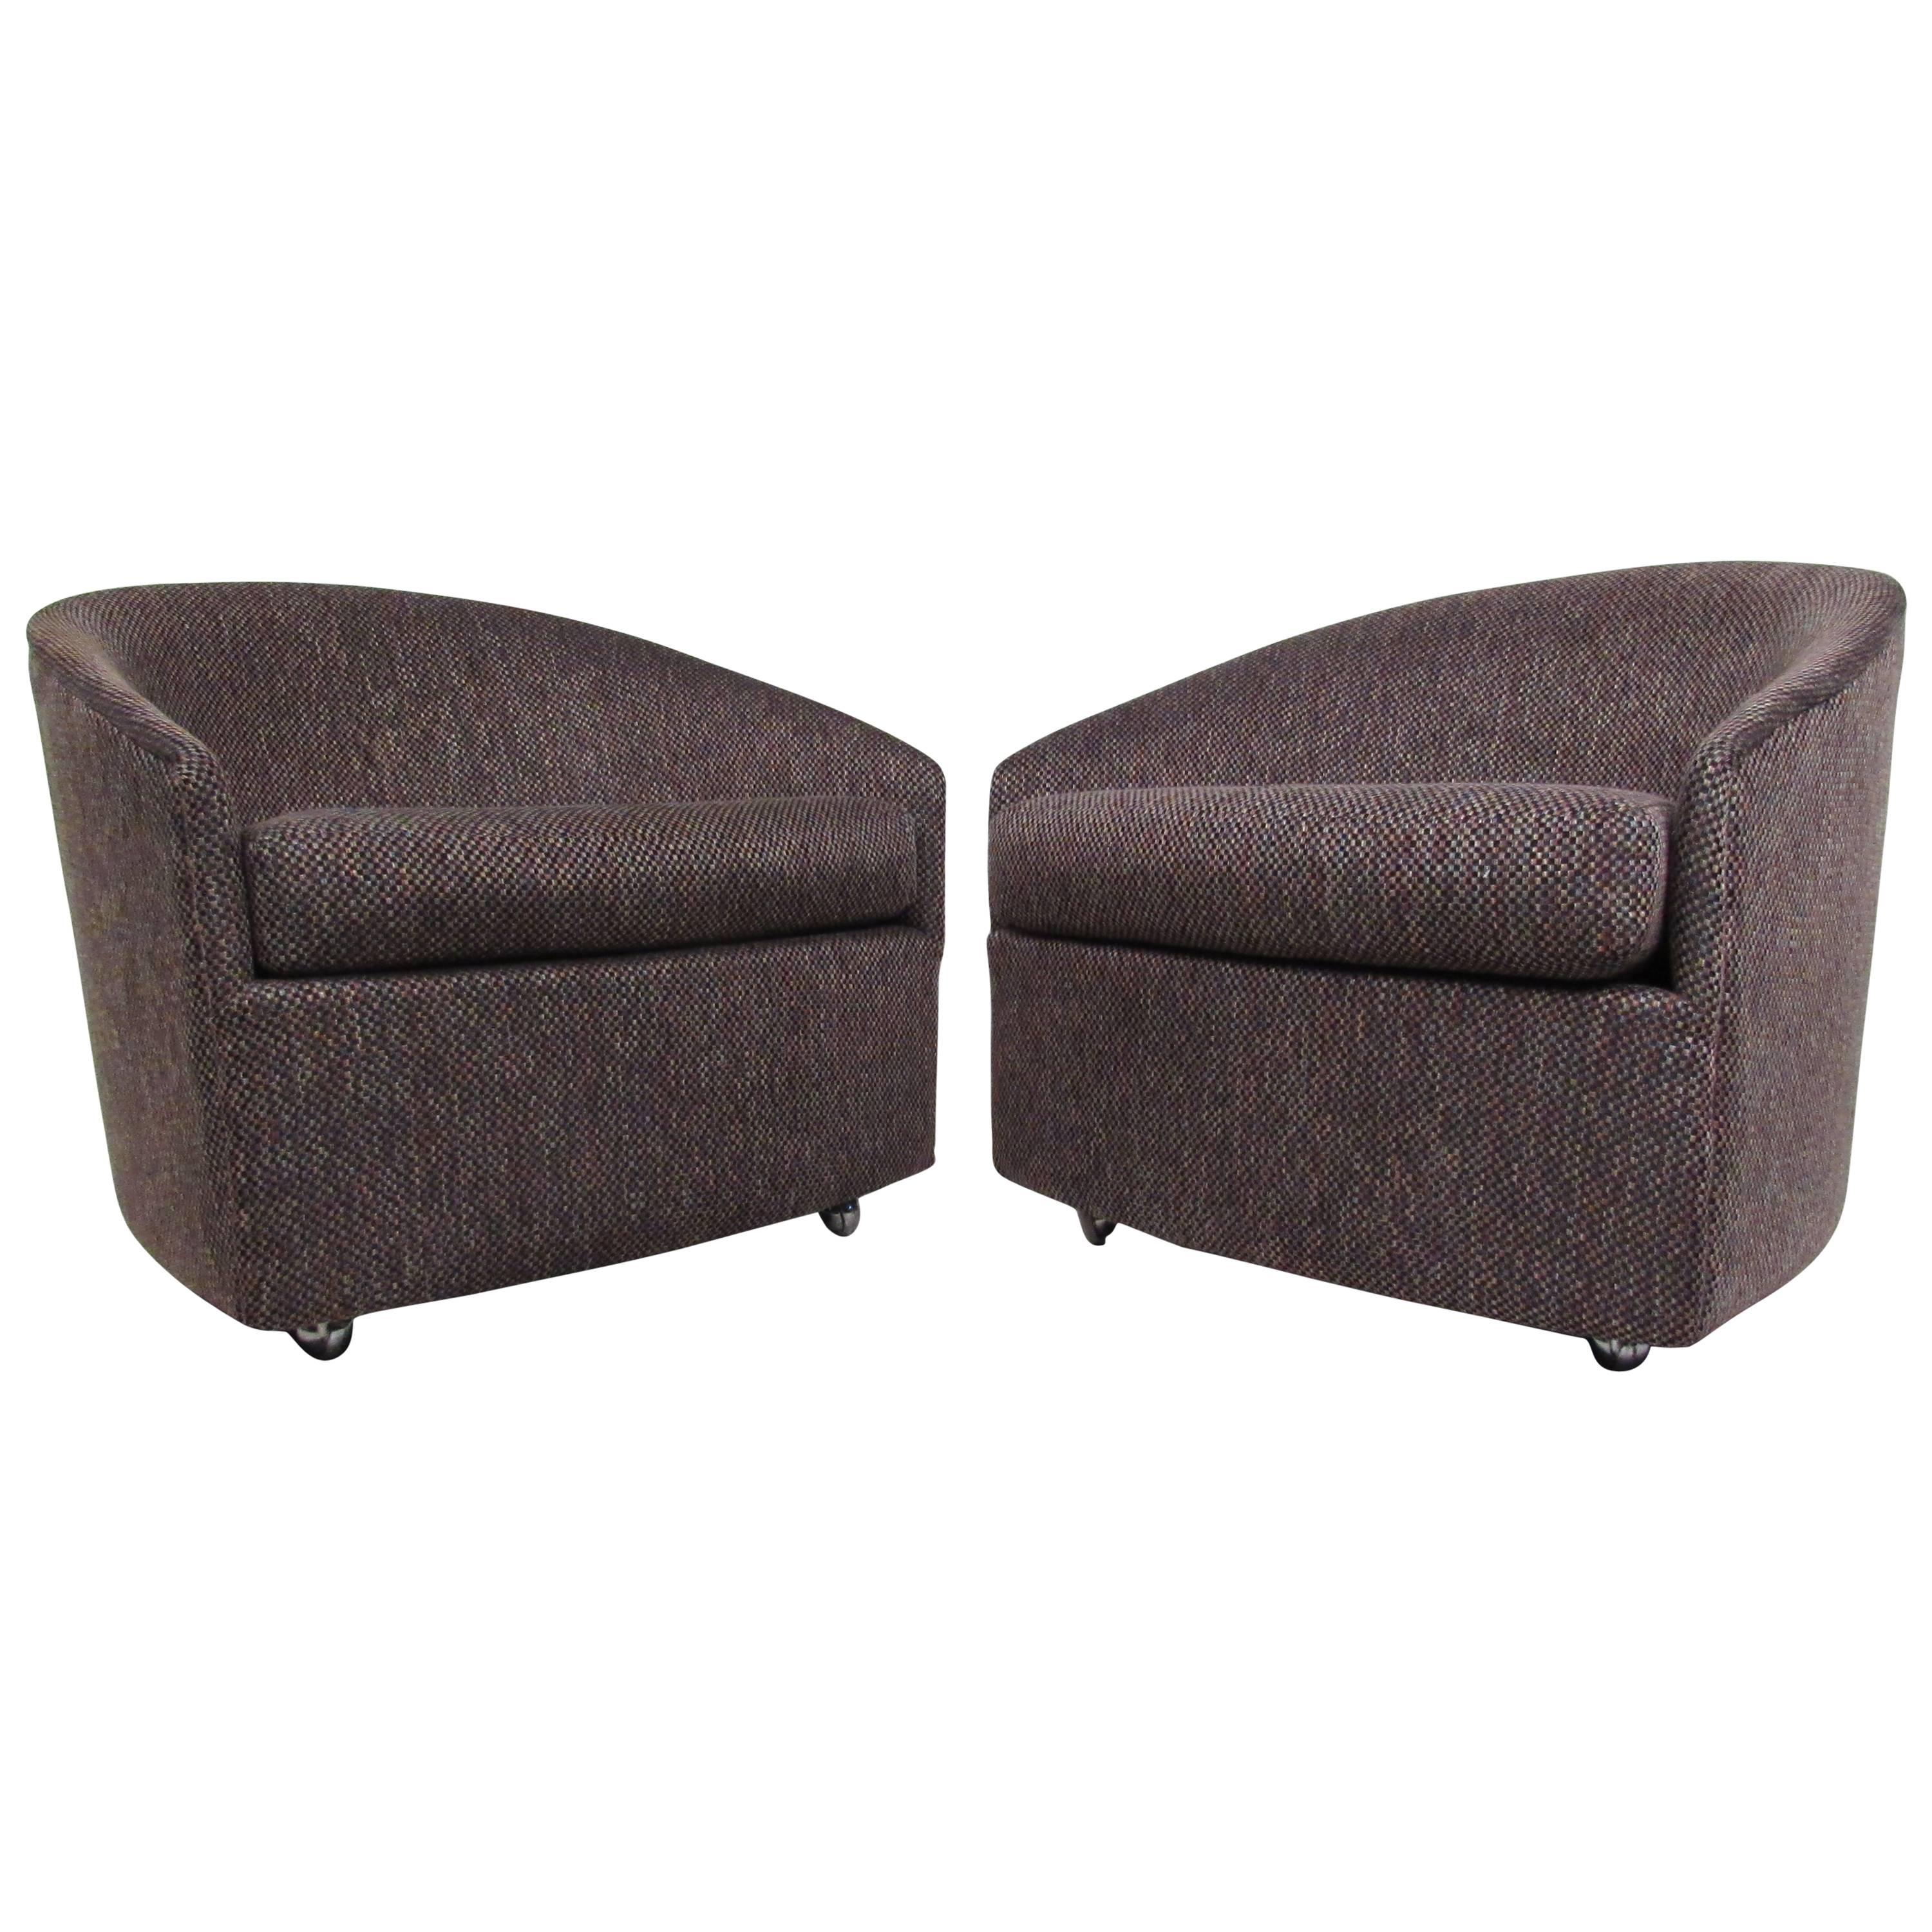 Pair of Stylish Mid-Century Modern Barrel Back Lounge Chairs after Milo Baughman